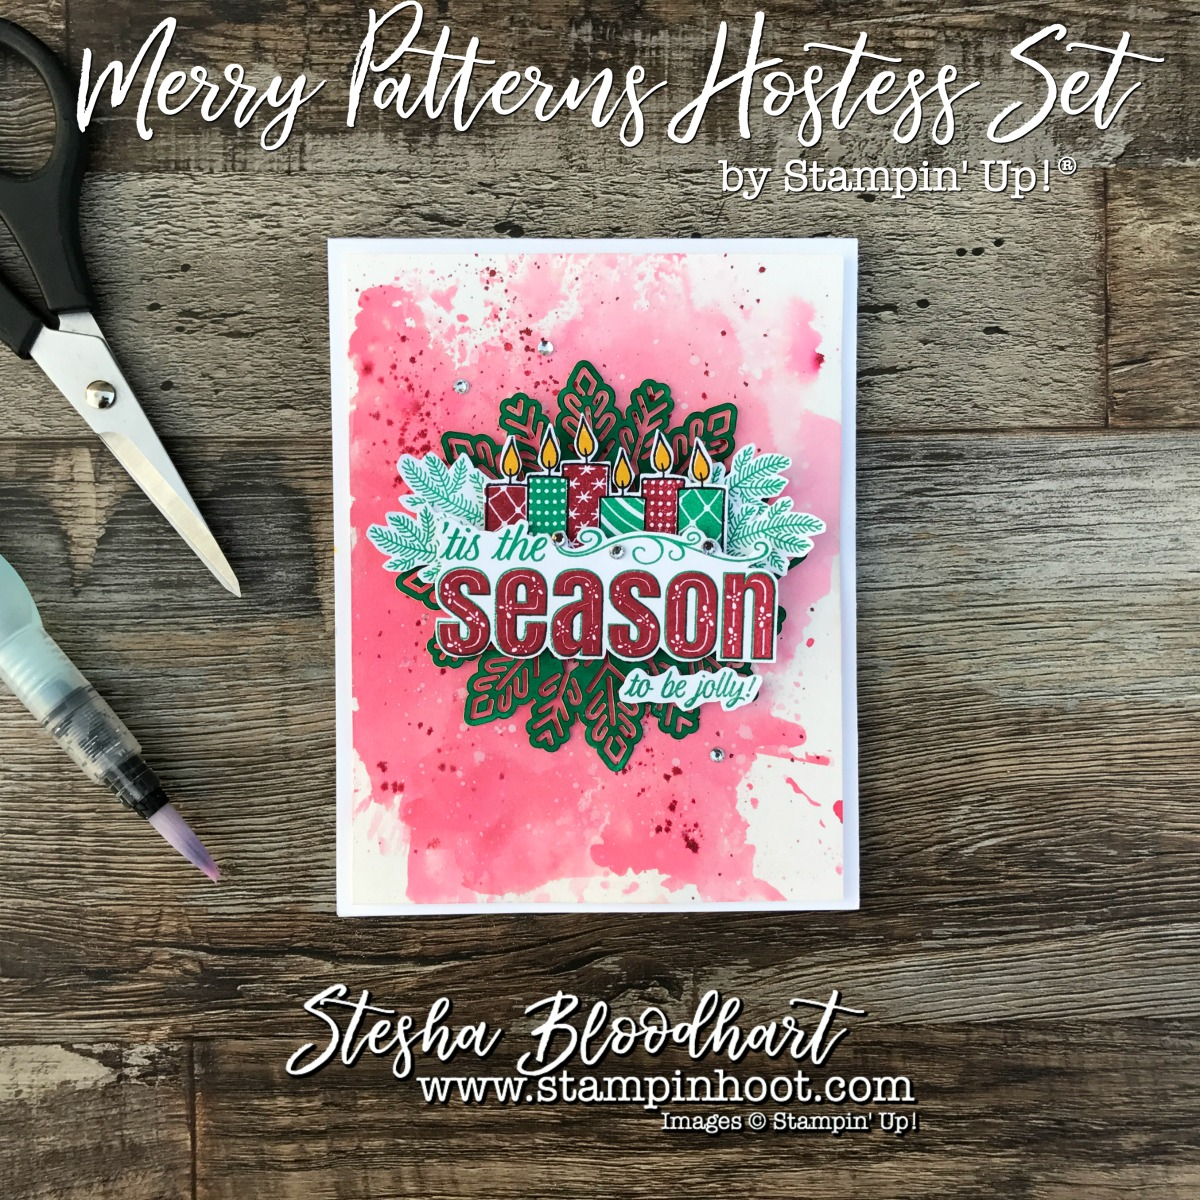 Merry Patterns Hostess Stamp Set by Stampin' Up! for the Pals 2017 September Blog Hop! #merrypatterns #stamping #cardmaking #papercrafts #christmascards #christmas #stampinup